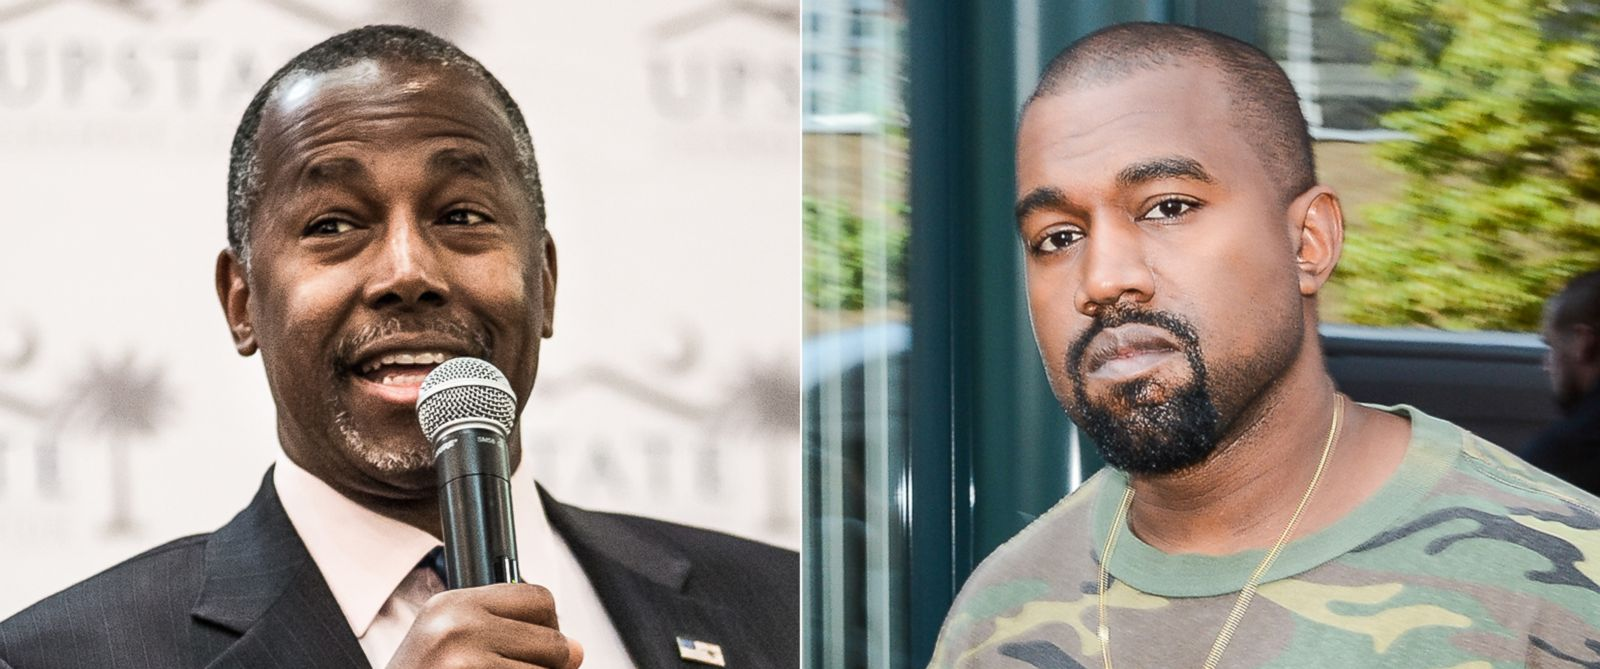 PHOTO: Republican presidential candidate Ben Carson in Greenville, S.C., Sept. 18, 2015. | Kanye West in New York City, Sept. 9, 2015.